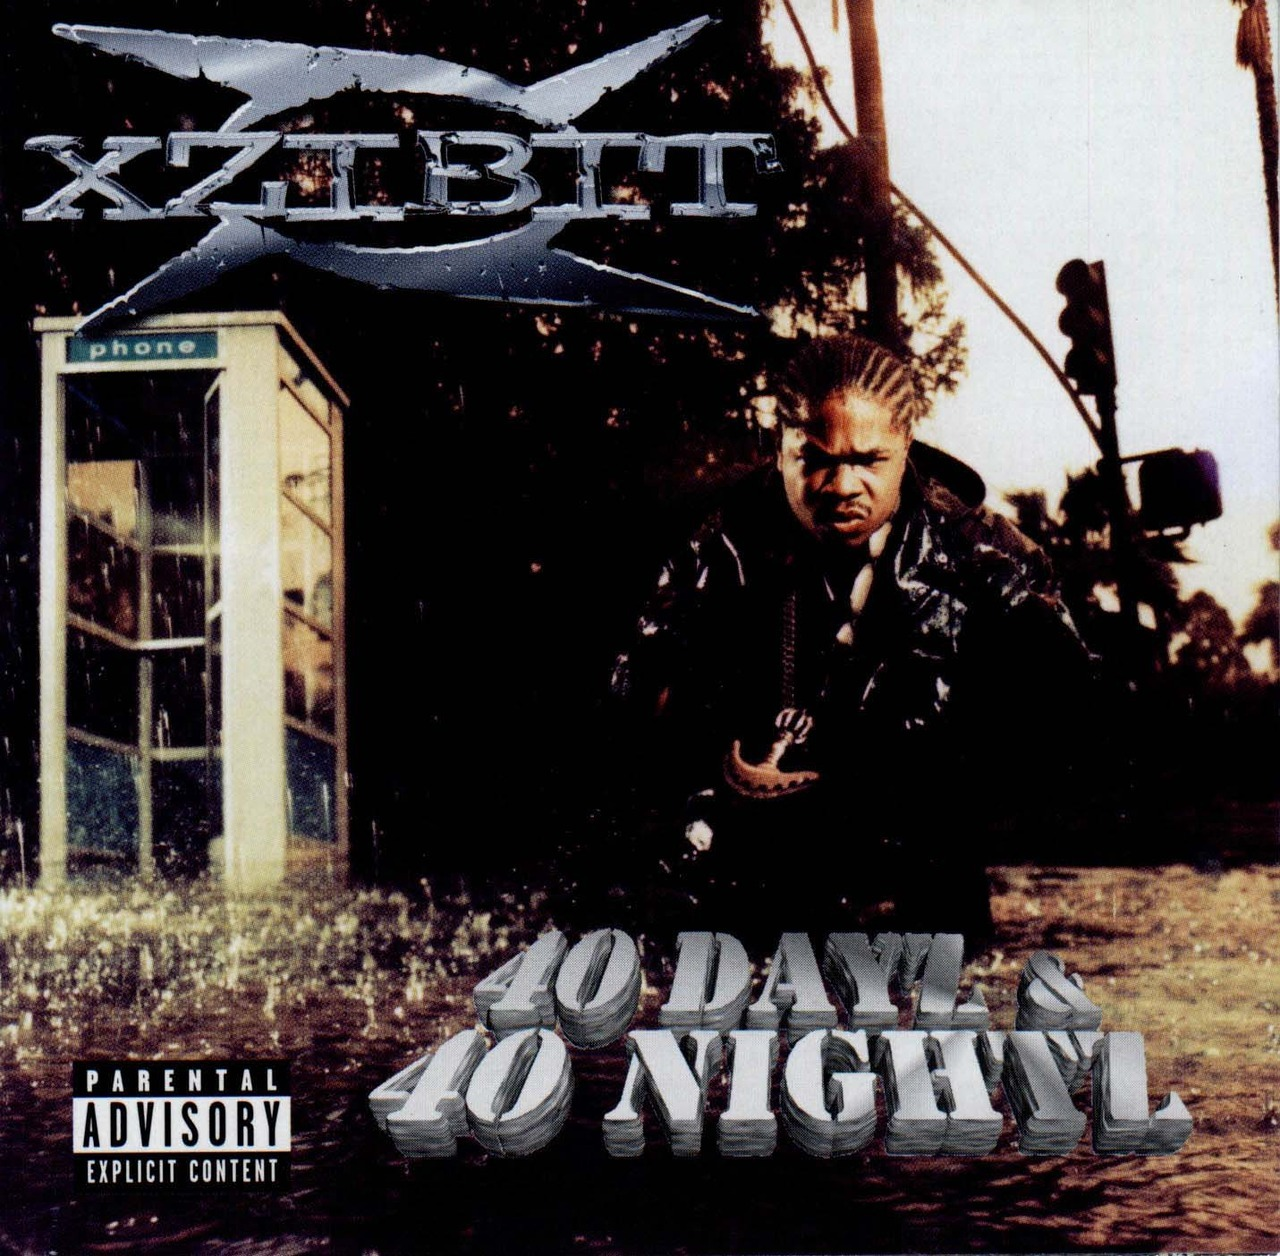 BACK IN THE DAY |8/25/98| Xzibit released his second album, 40 Dayz & 40 Nightz,  on RCA Records.